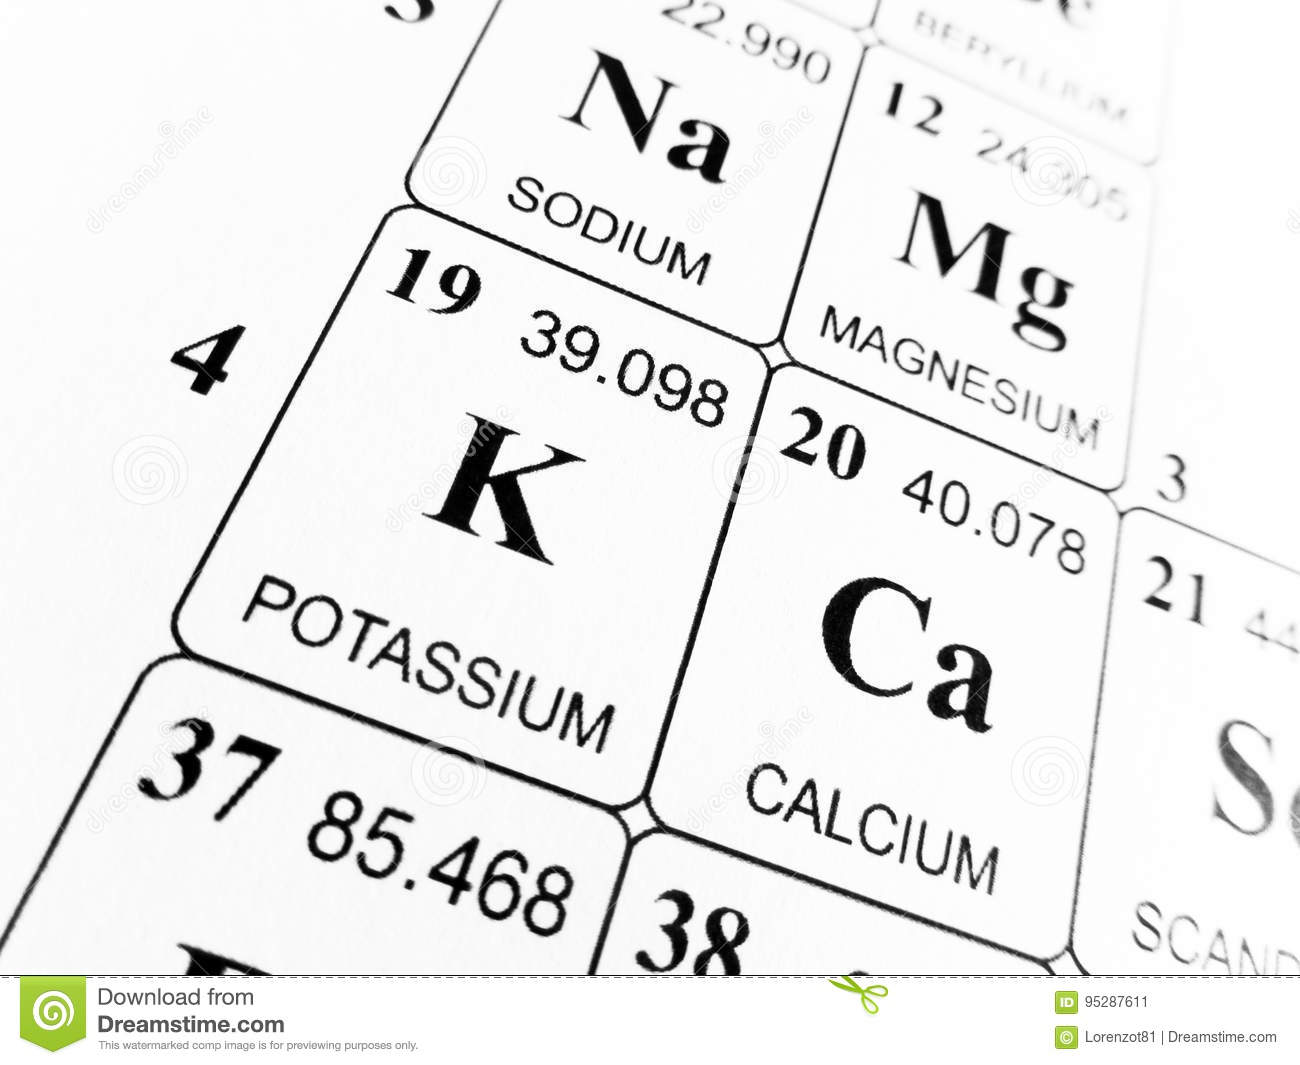 Potassium On The Periodic Table Of The Elements Stock Image Image